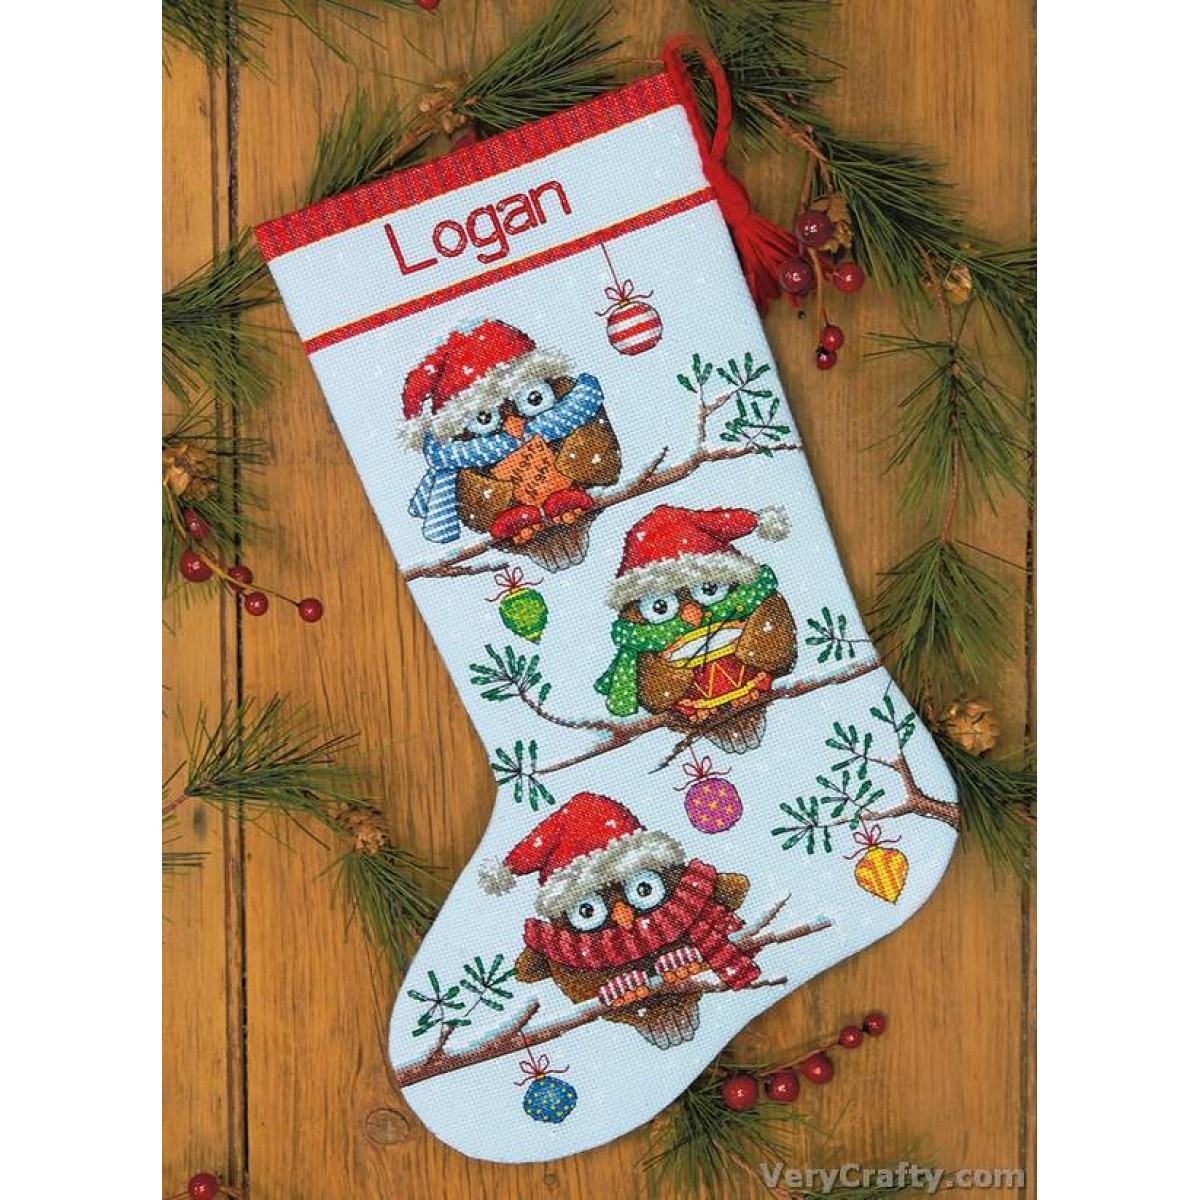 "14 Count Dimensions Counted Cross Stitch Kit 16/"" Long-Holiday Hooties Stocking"